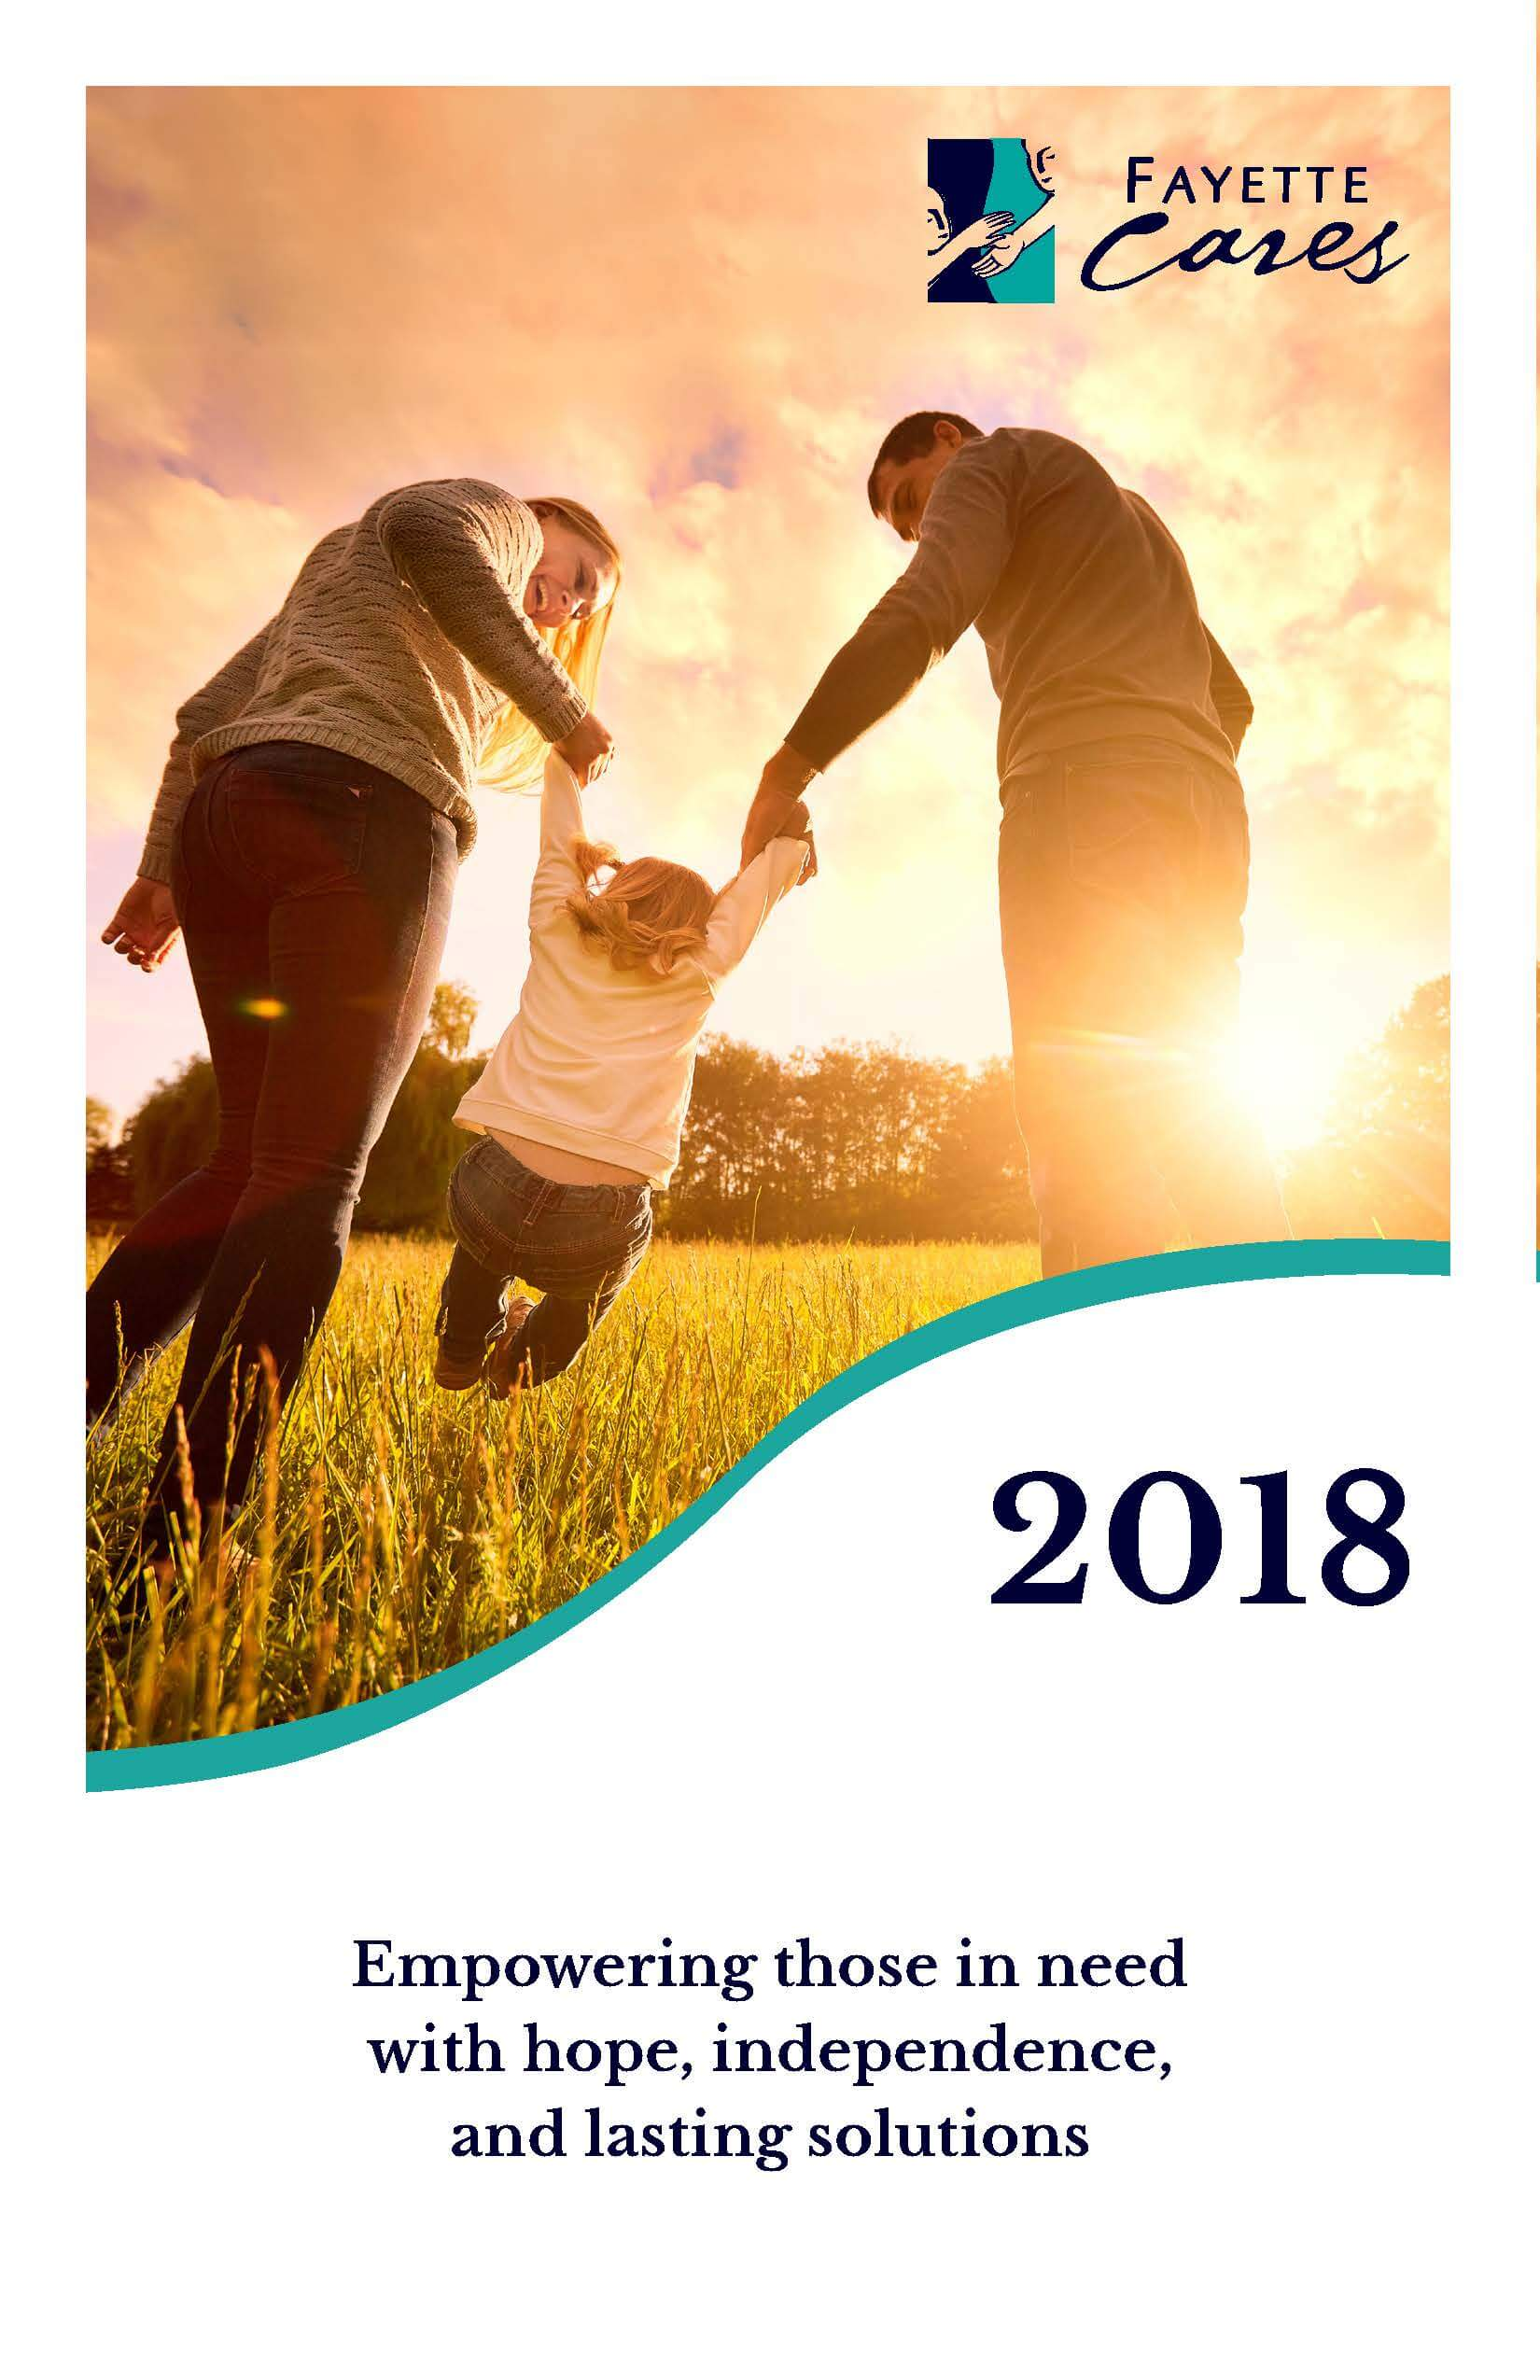 2018 Fayette Cares Annual Report Cover Image